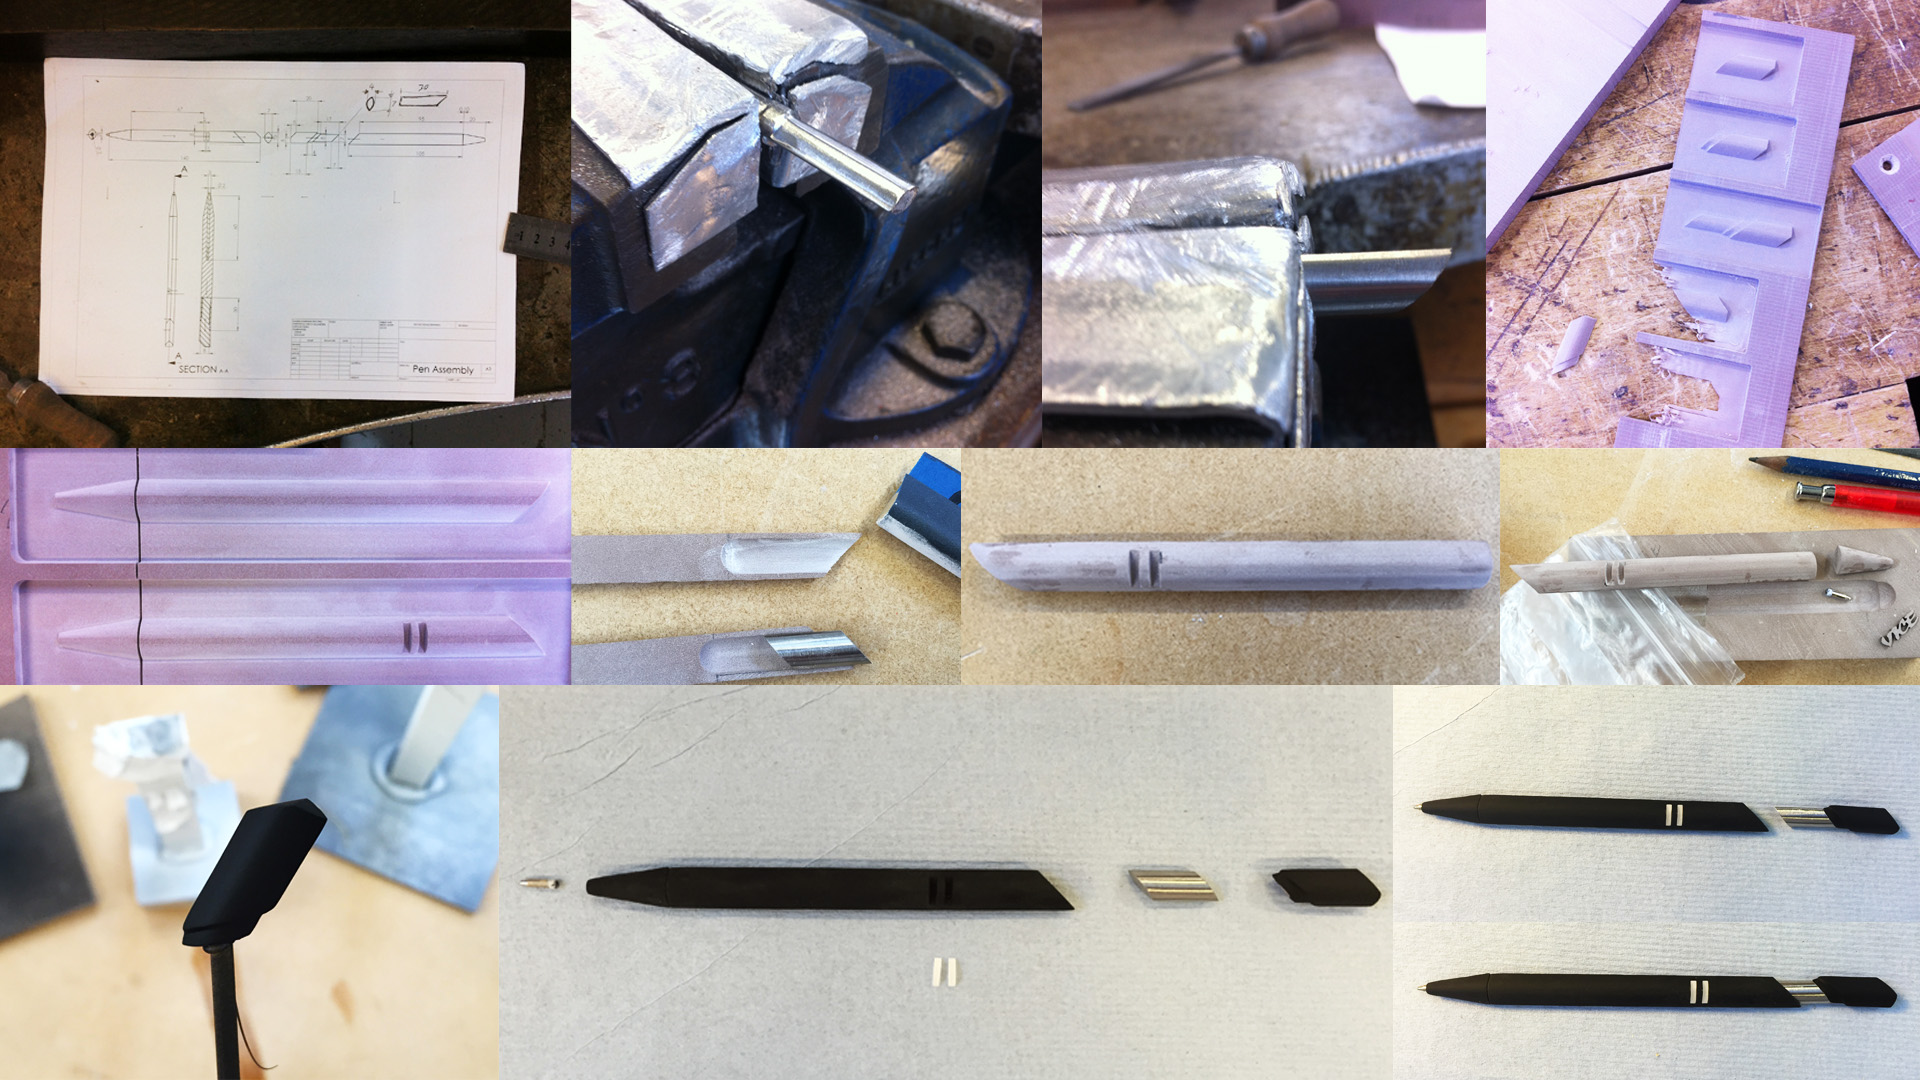 Model making process step by step.